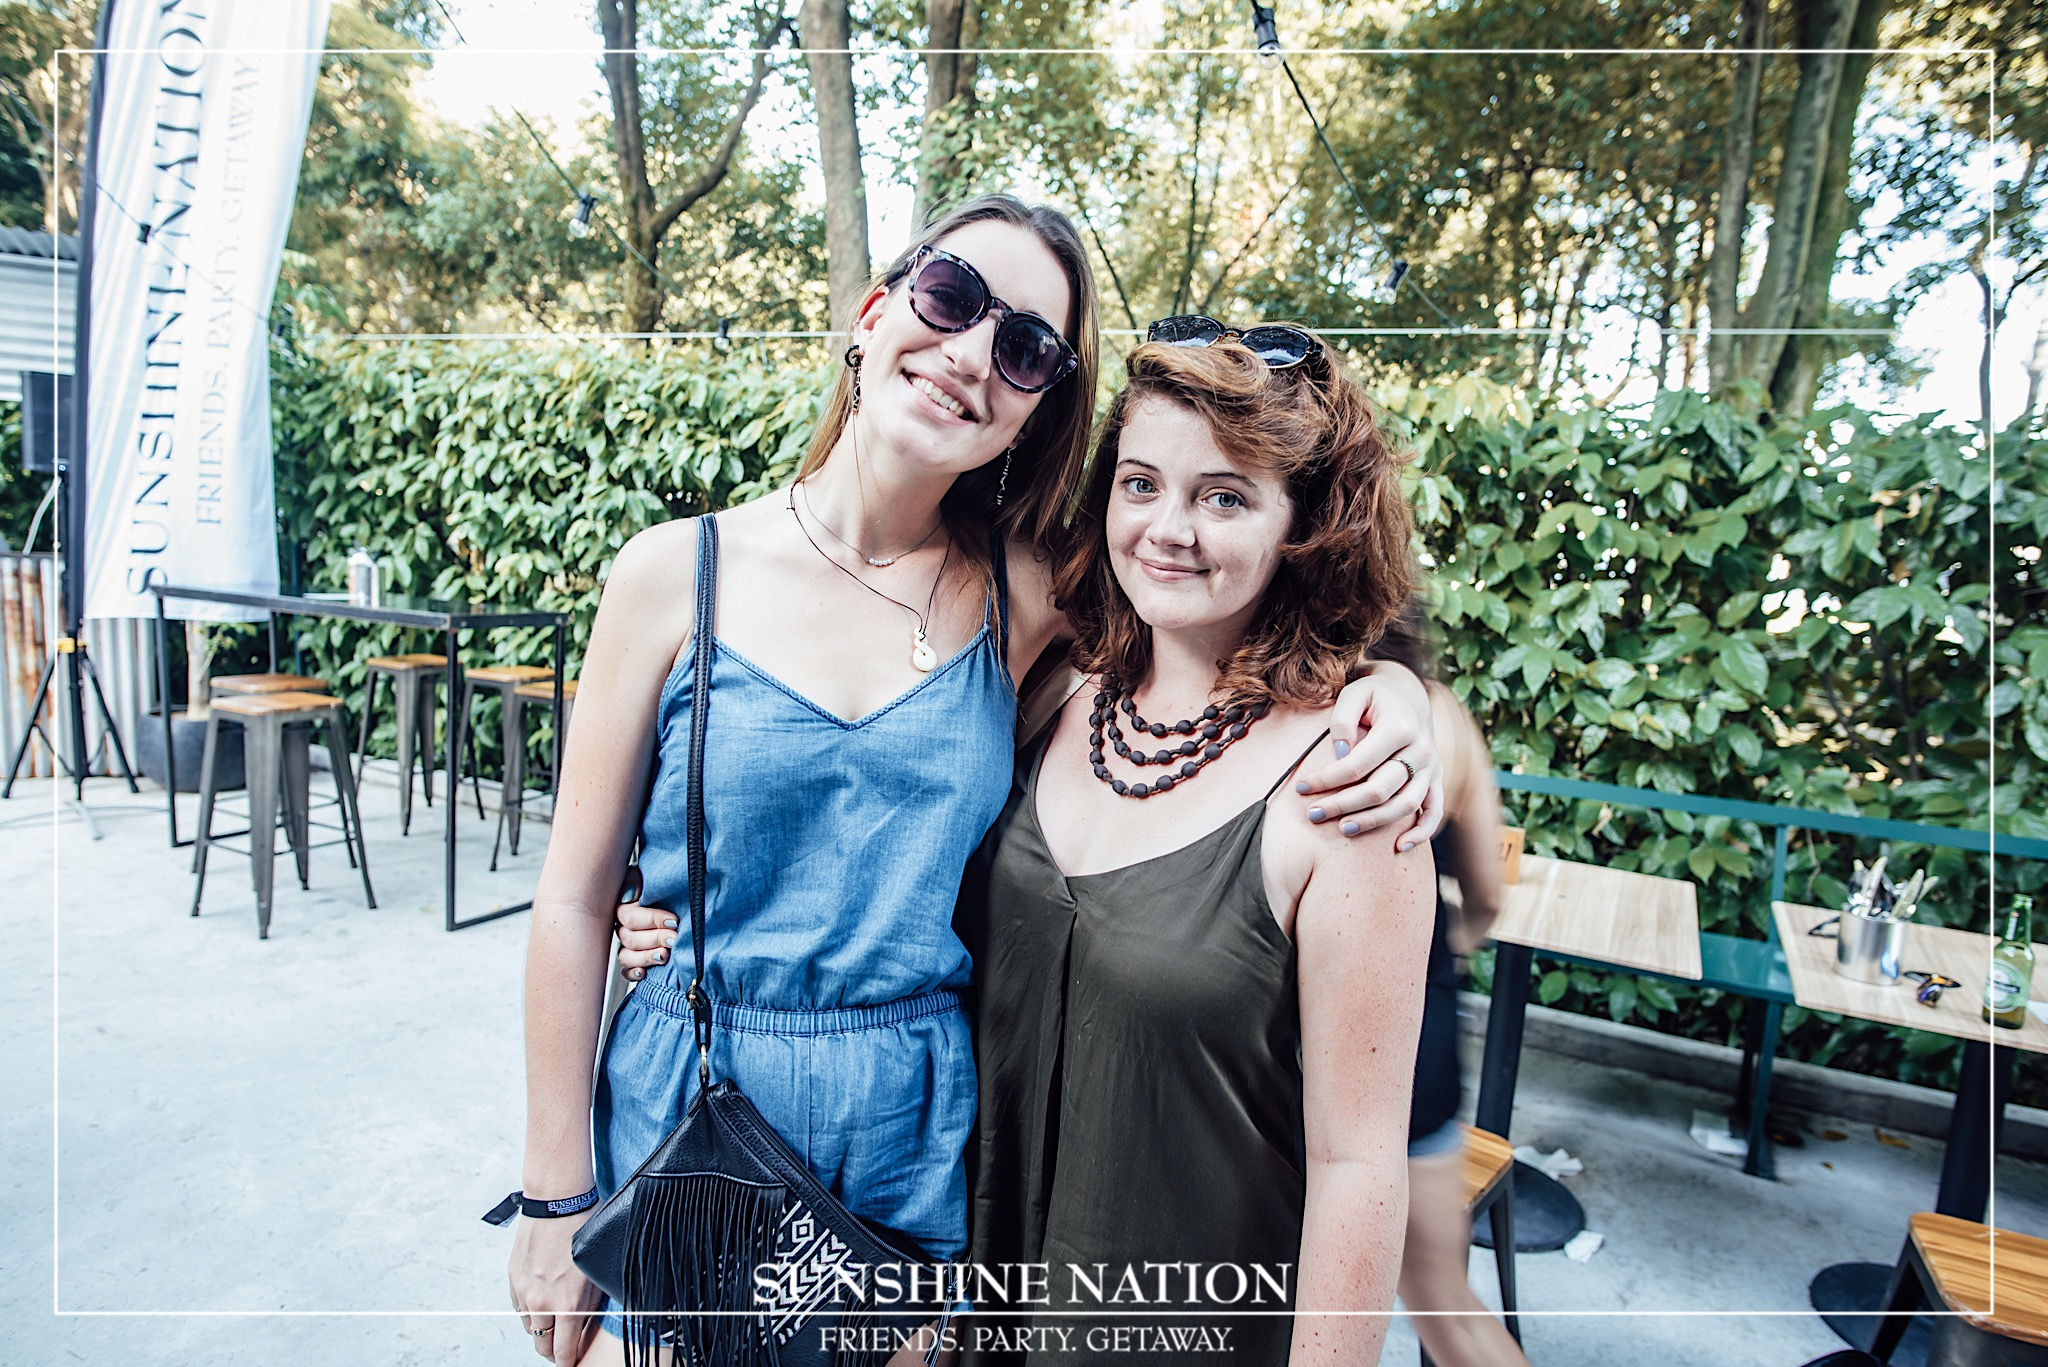 18092016_SunshineNation_Colossal084_Watermarked.jpg